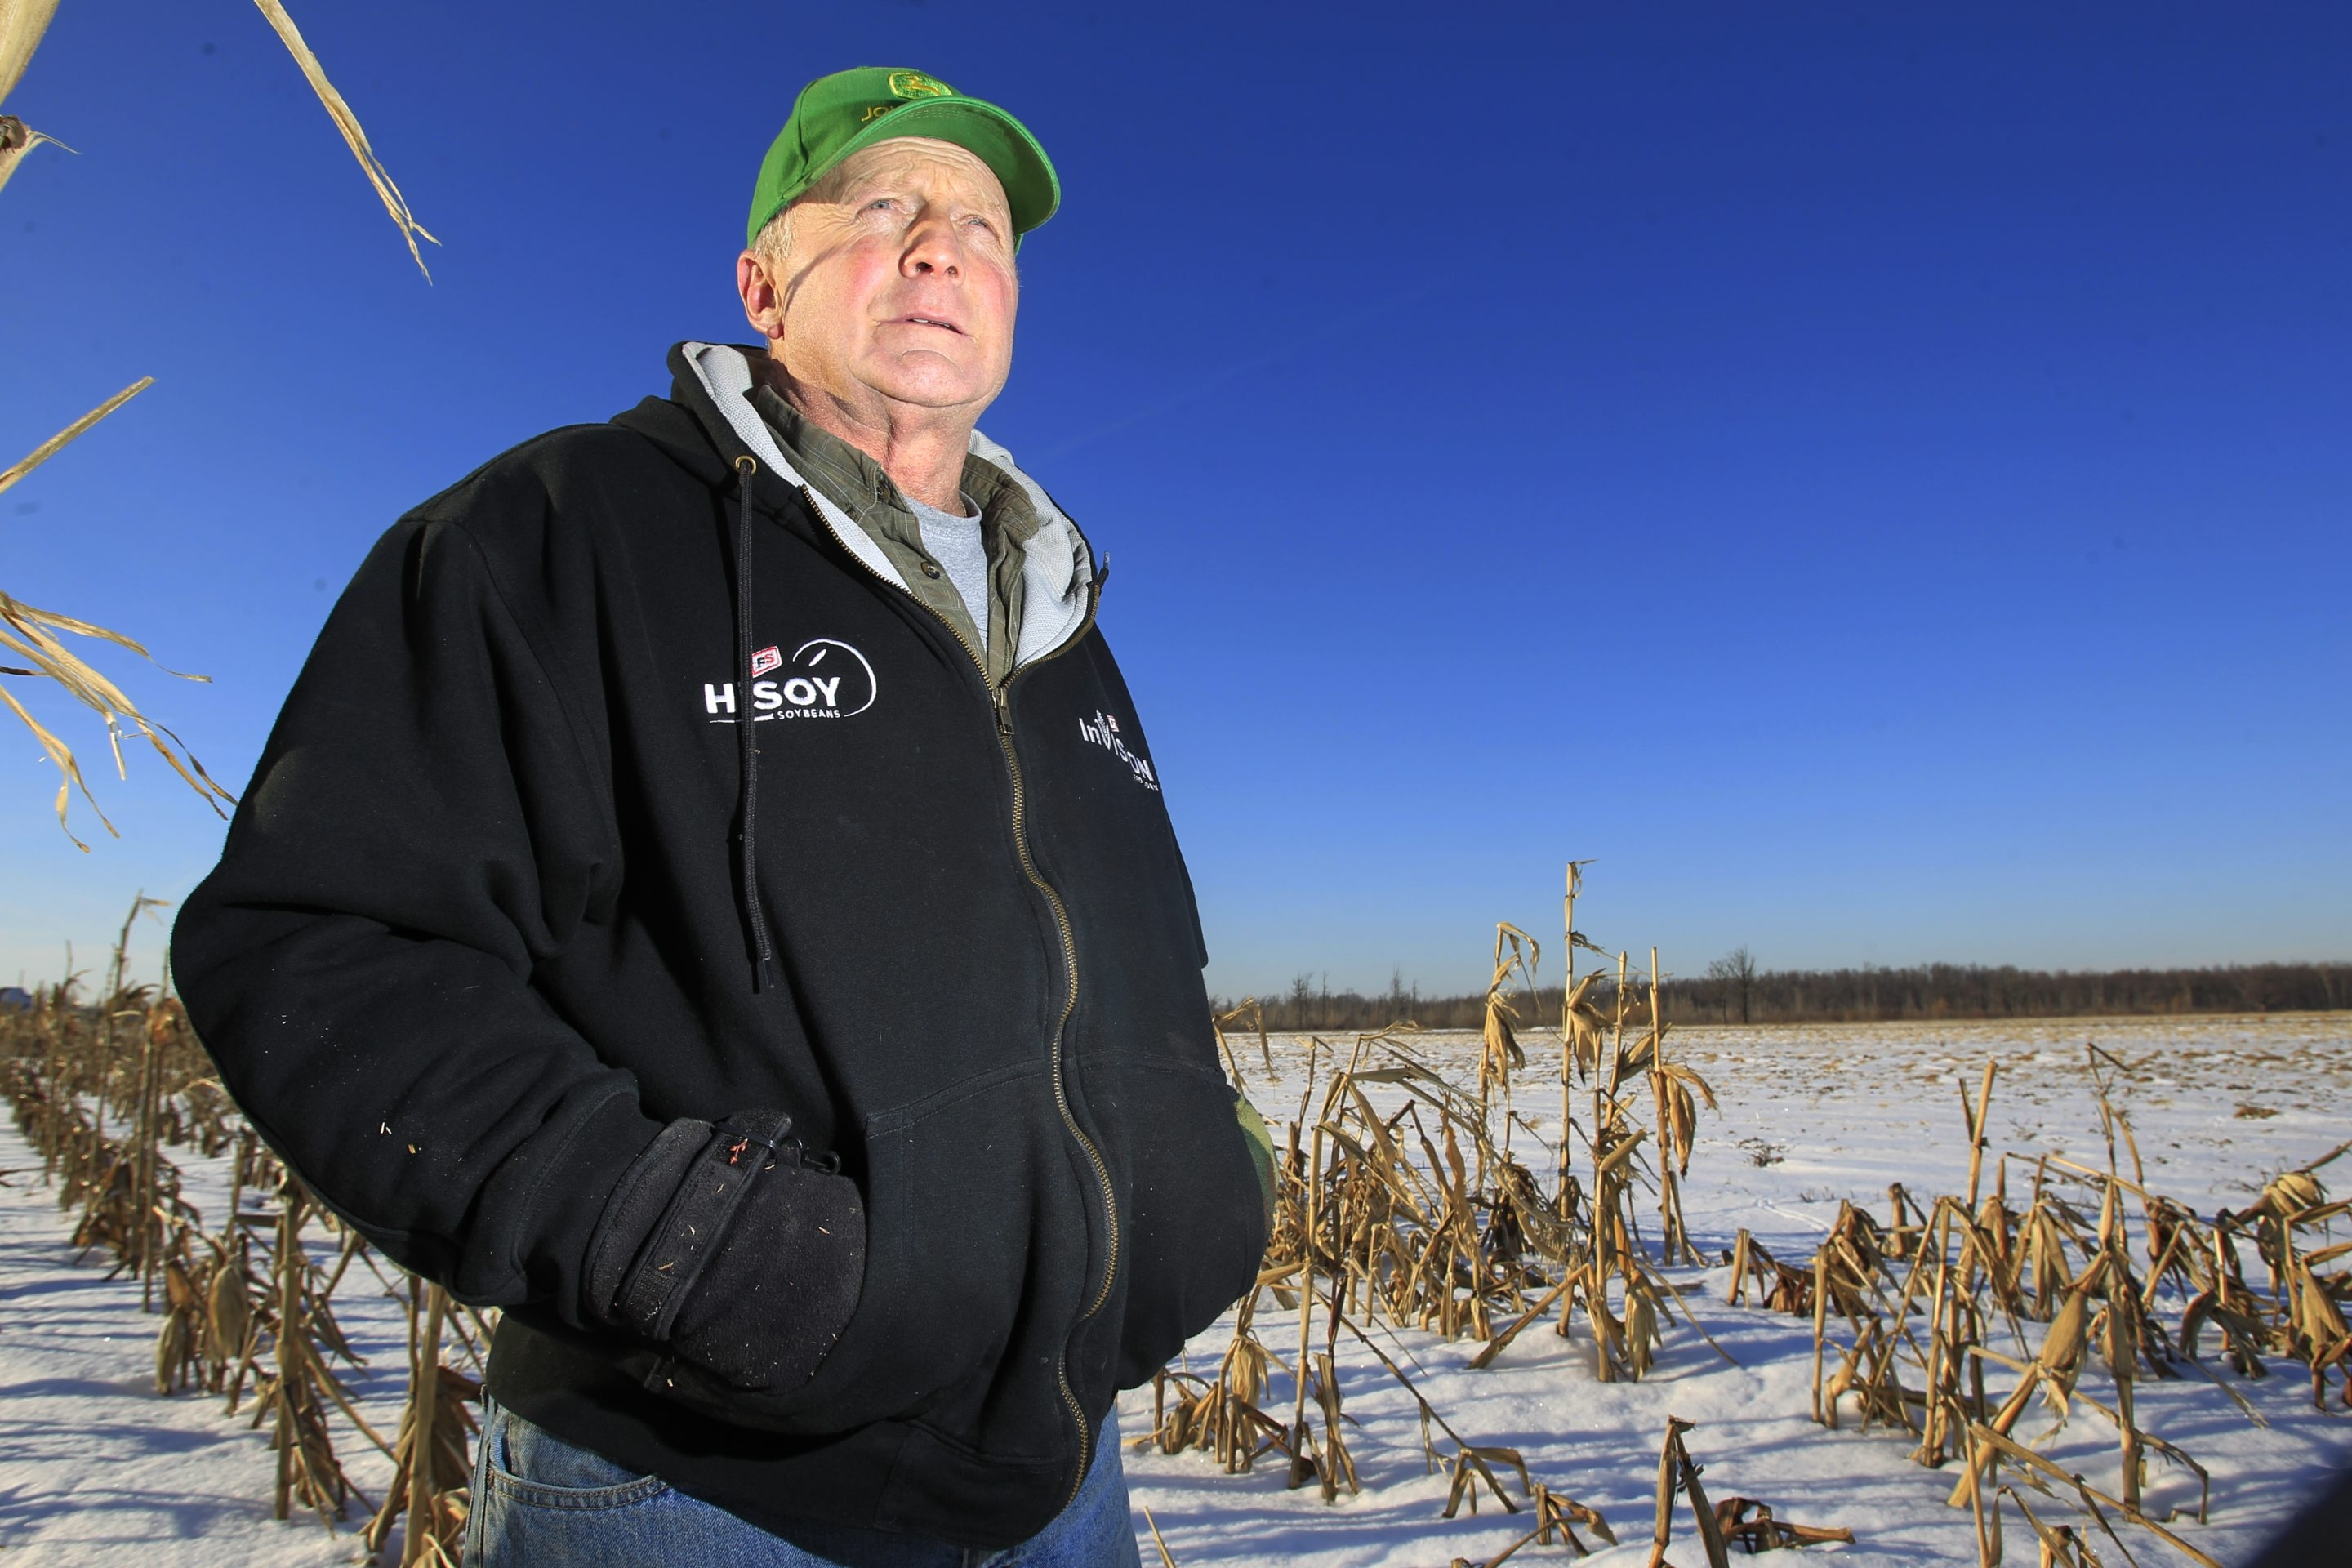 Town paid Greg Spoth for development rights, meaning he keeps property with the assurance that it remains farmland.